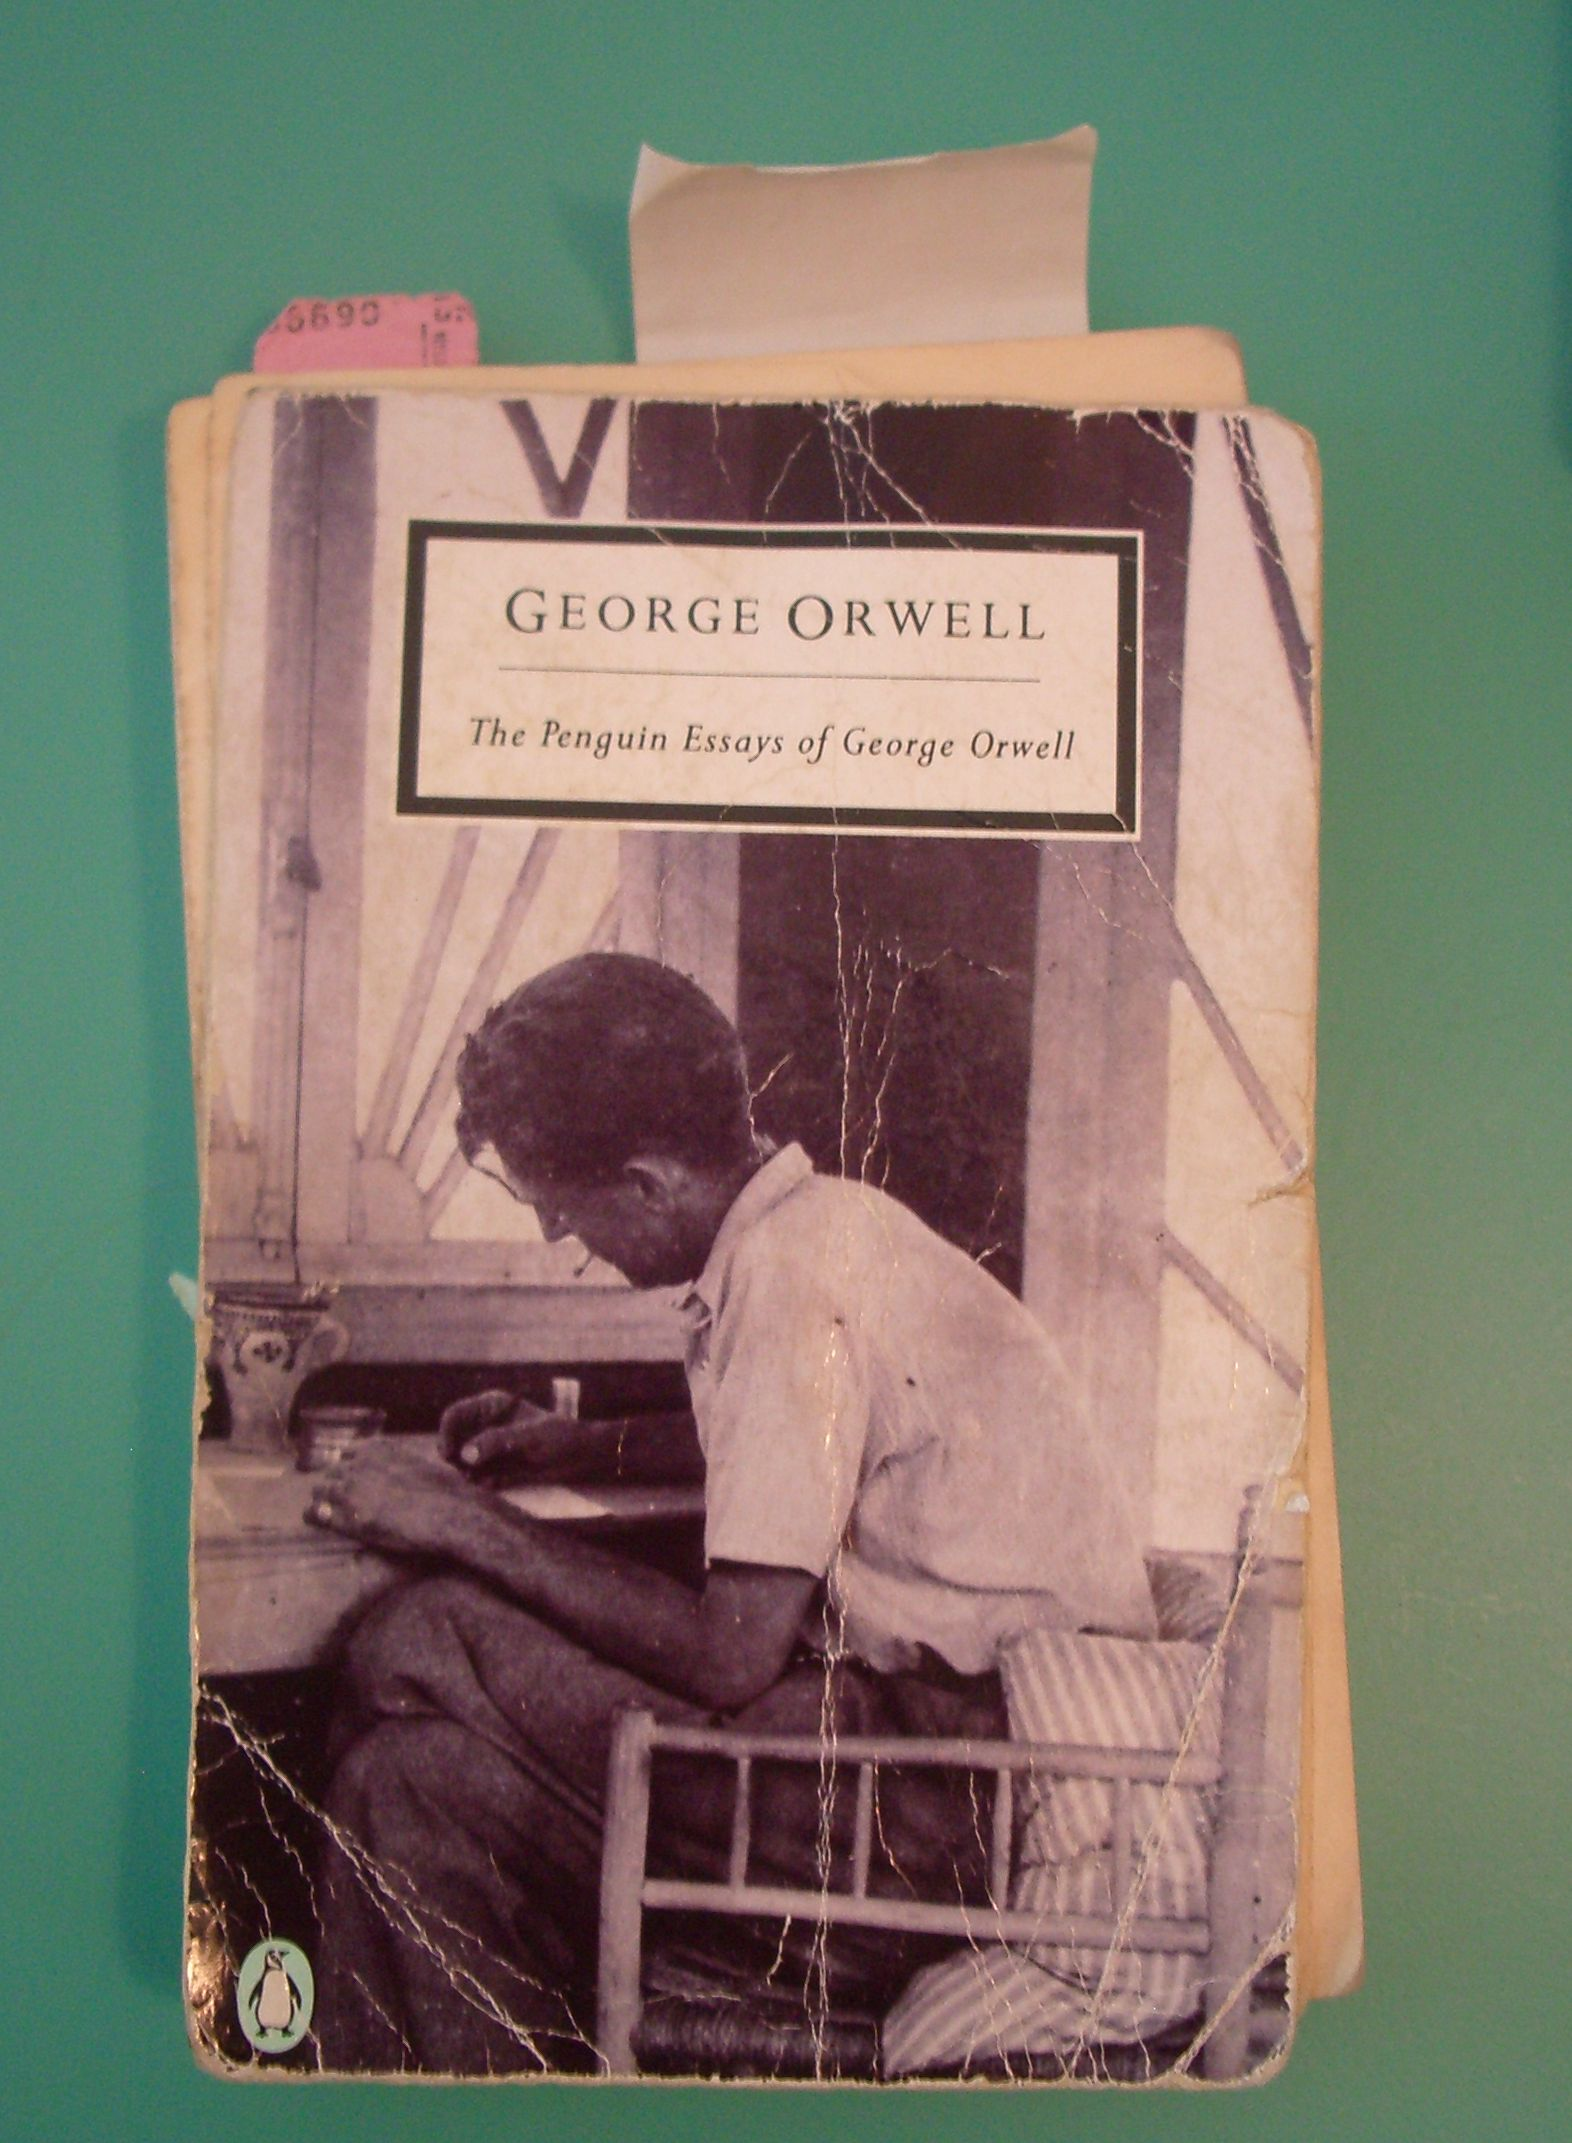 rhoda baxter the book i d pass on is the complete essays of george orwell my copy is falling apart from use and grubby soot from holidays in cornwall